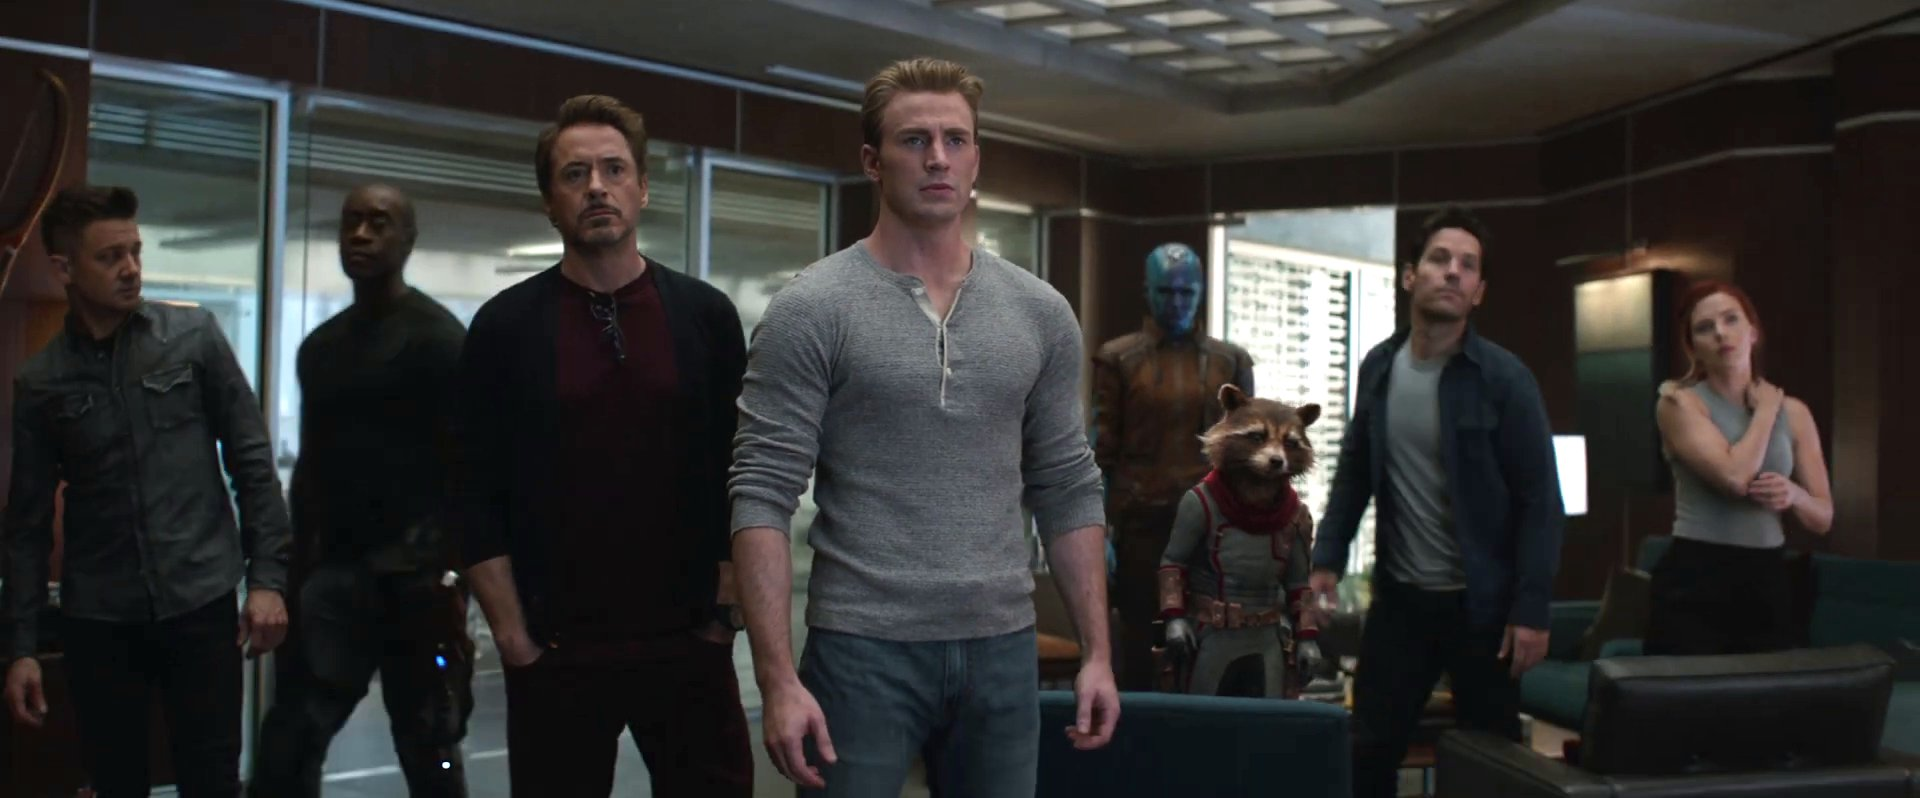 Avengers directors the Russo brothers plead with fans not to spoil Endgame in open letter